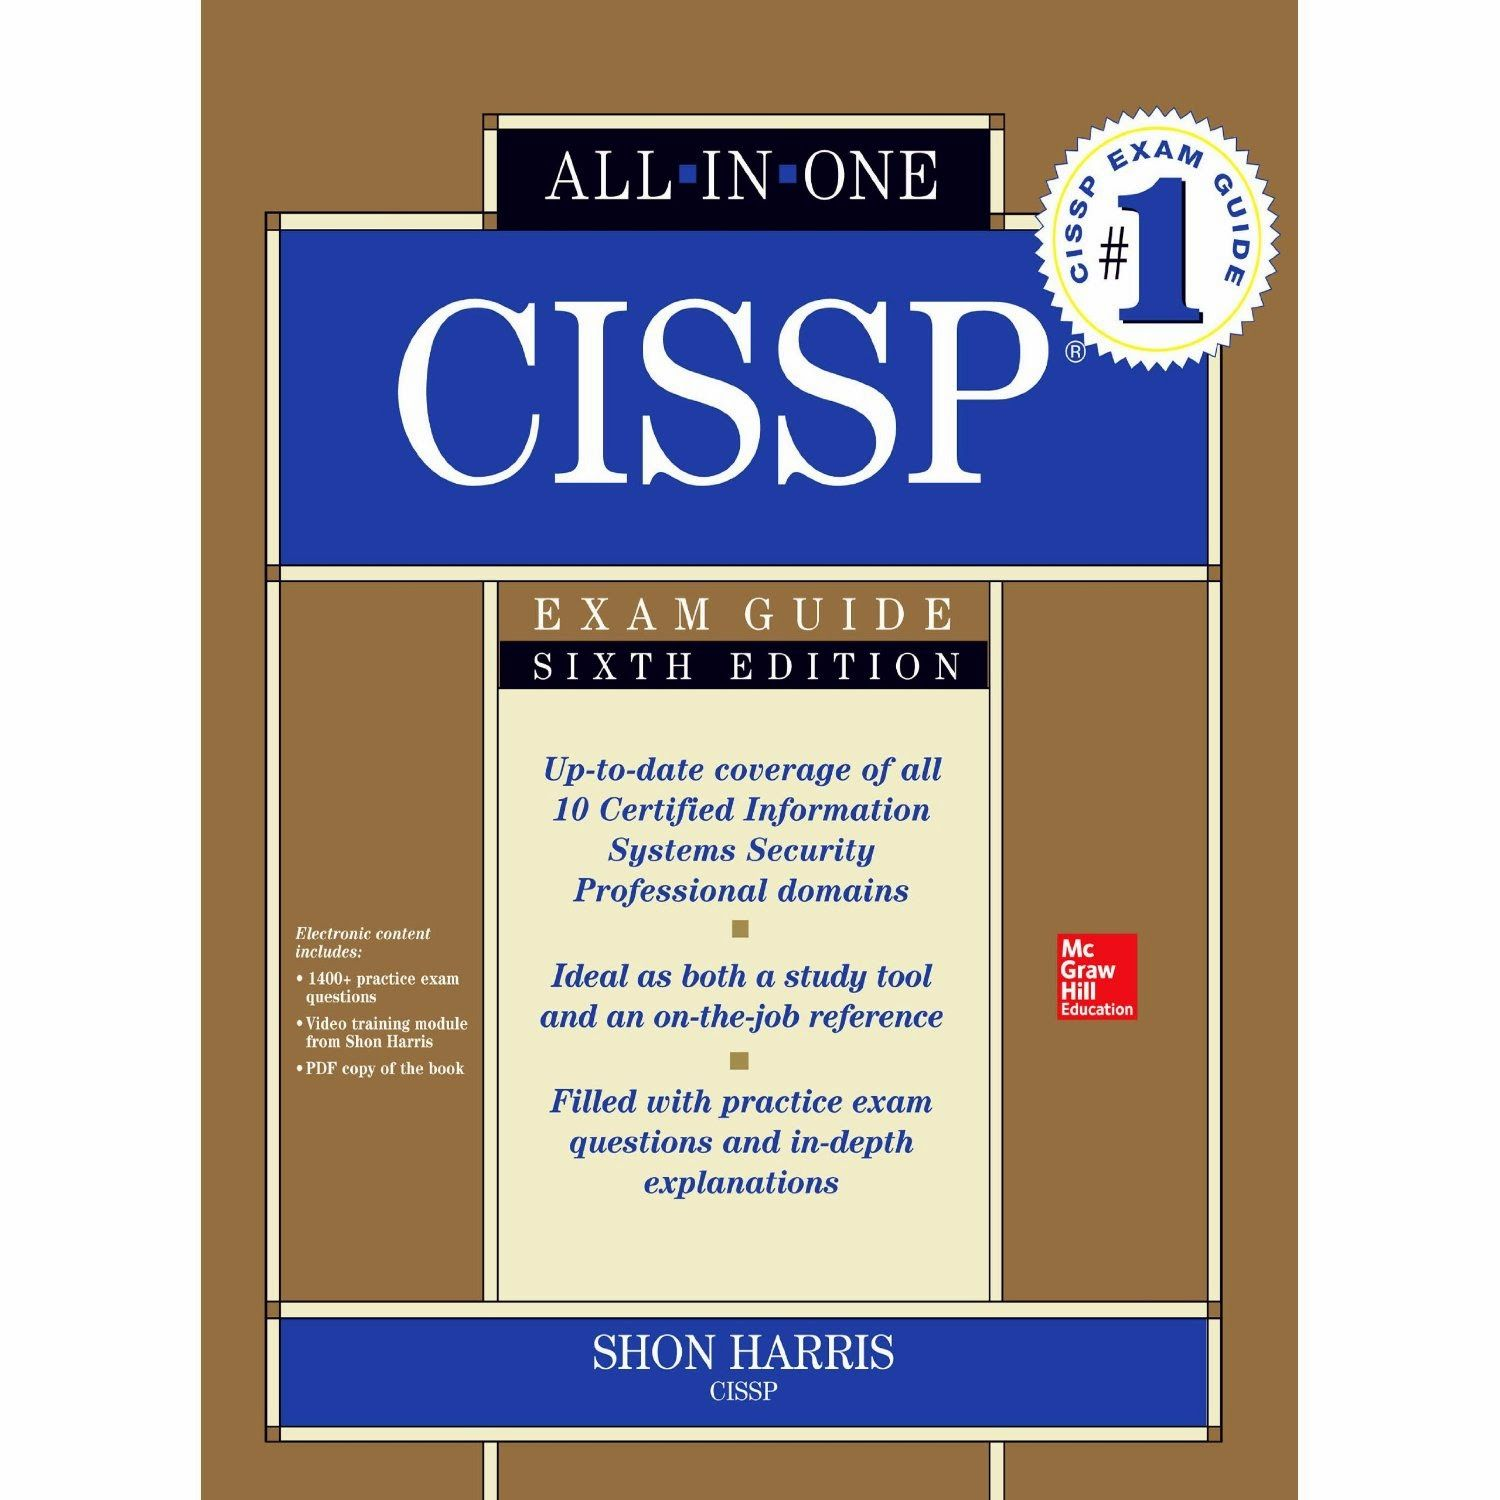 Get Free Download Ebooks Cissp All In One Exam Guide 6th Edition Free Down Exam Guide Exam Engineering Exam